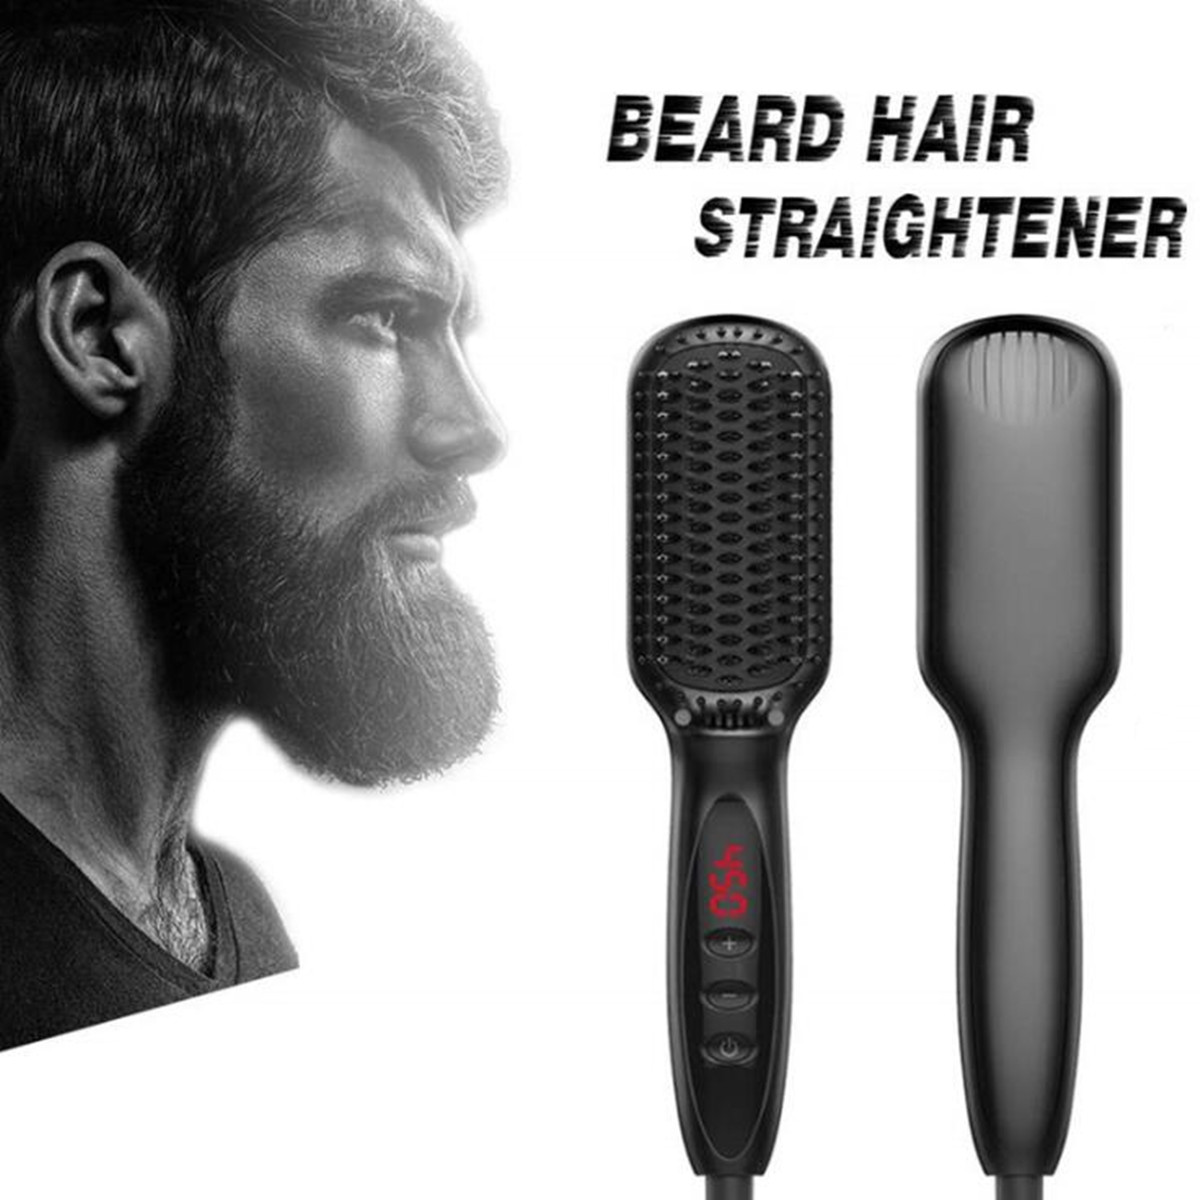 110-220V Comb Men Quick Beard Straightener Irons Hair Straightener Styling Tools with LCD Beard Styling Detangling Straightening110-220V Comb Men Quick Beard Straightener Irons Hair Straightener Styling Tools with LCD Beard Styling Detangling Straightening